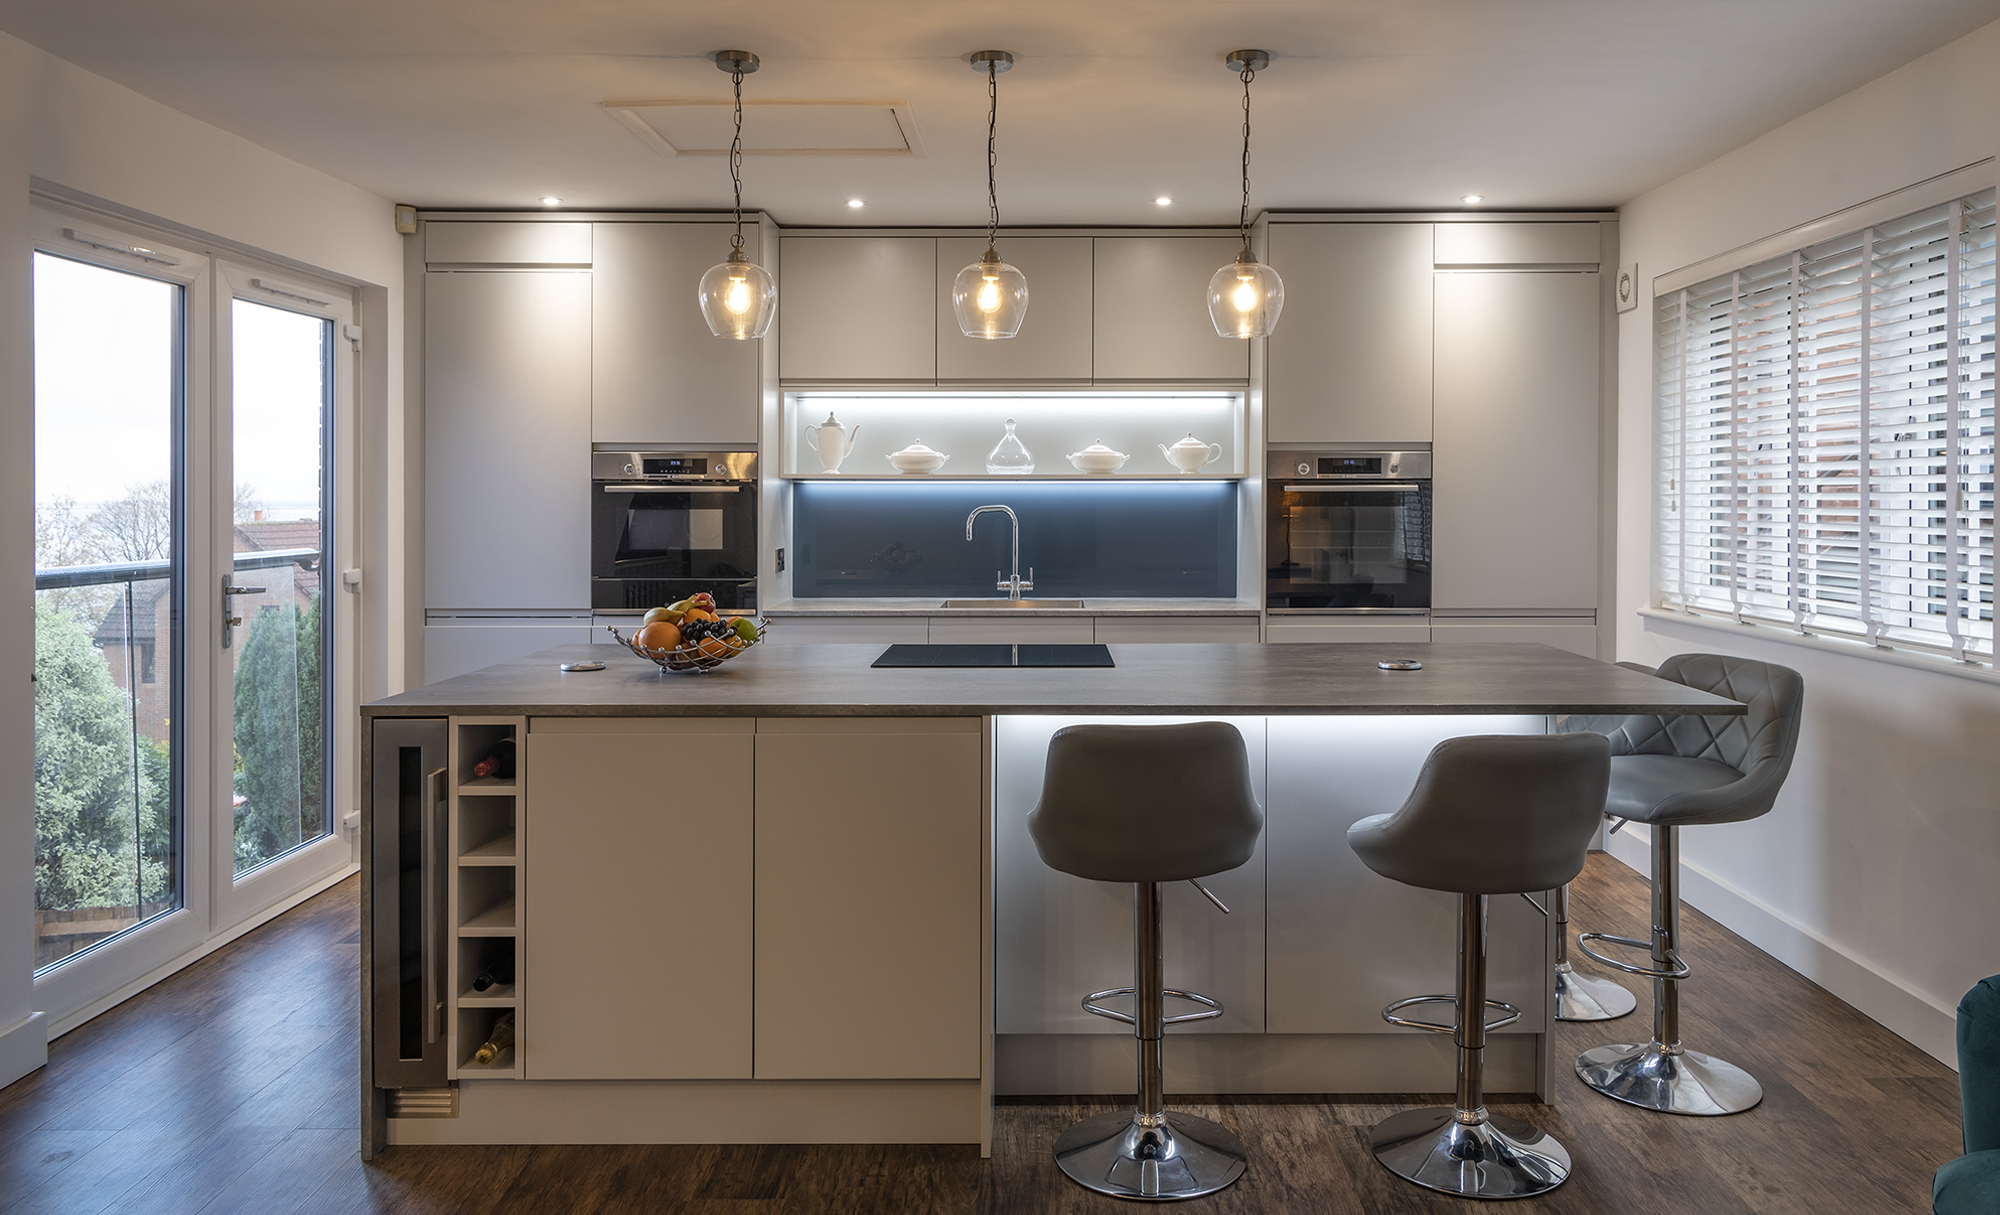 Portishead Strada Matte Light Grey Kitchen for a home in North Somerset Main